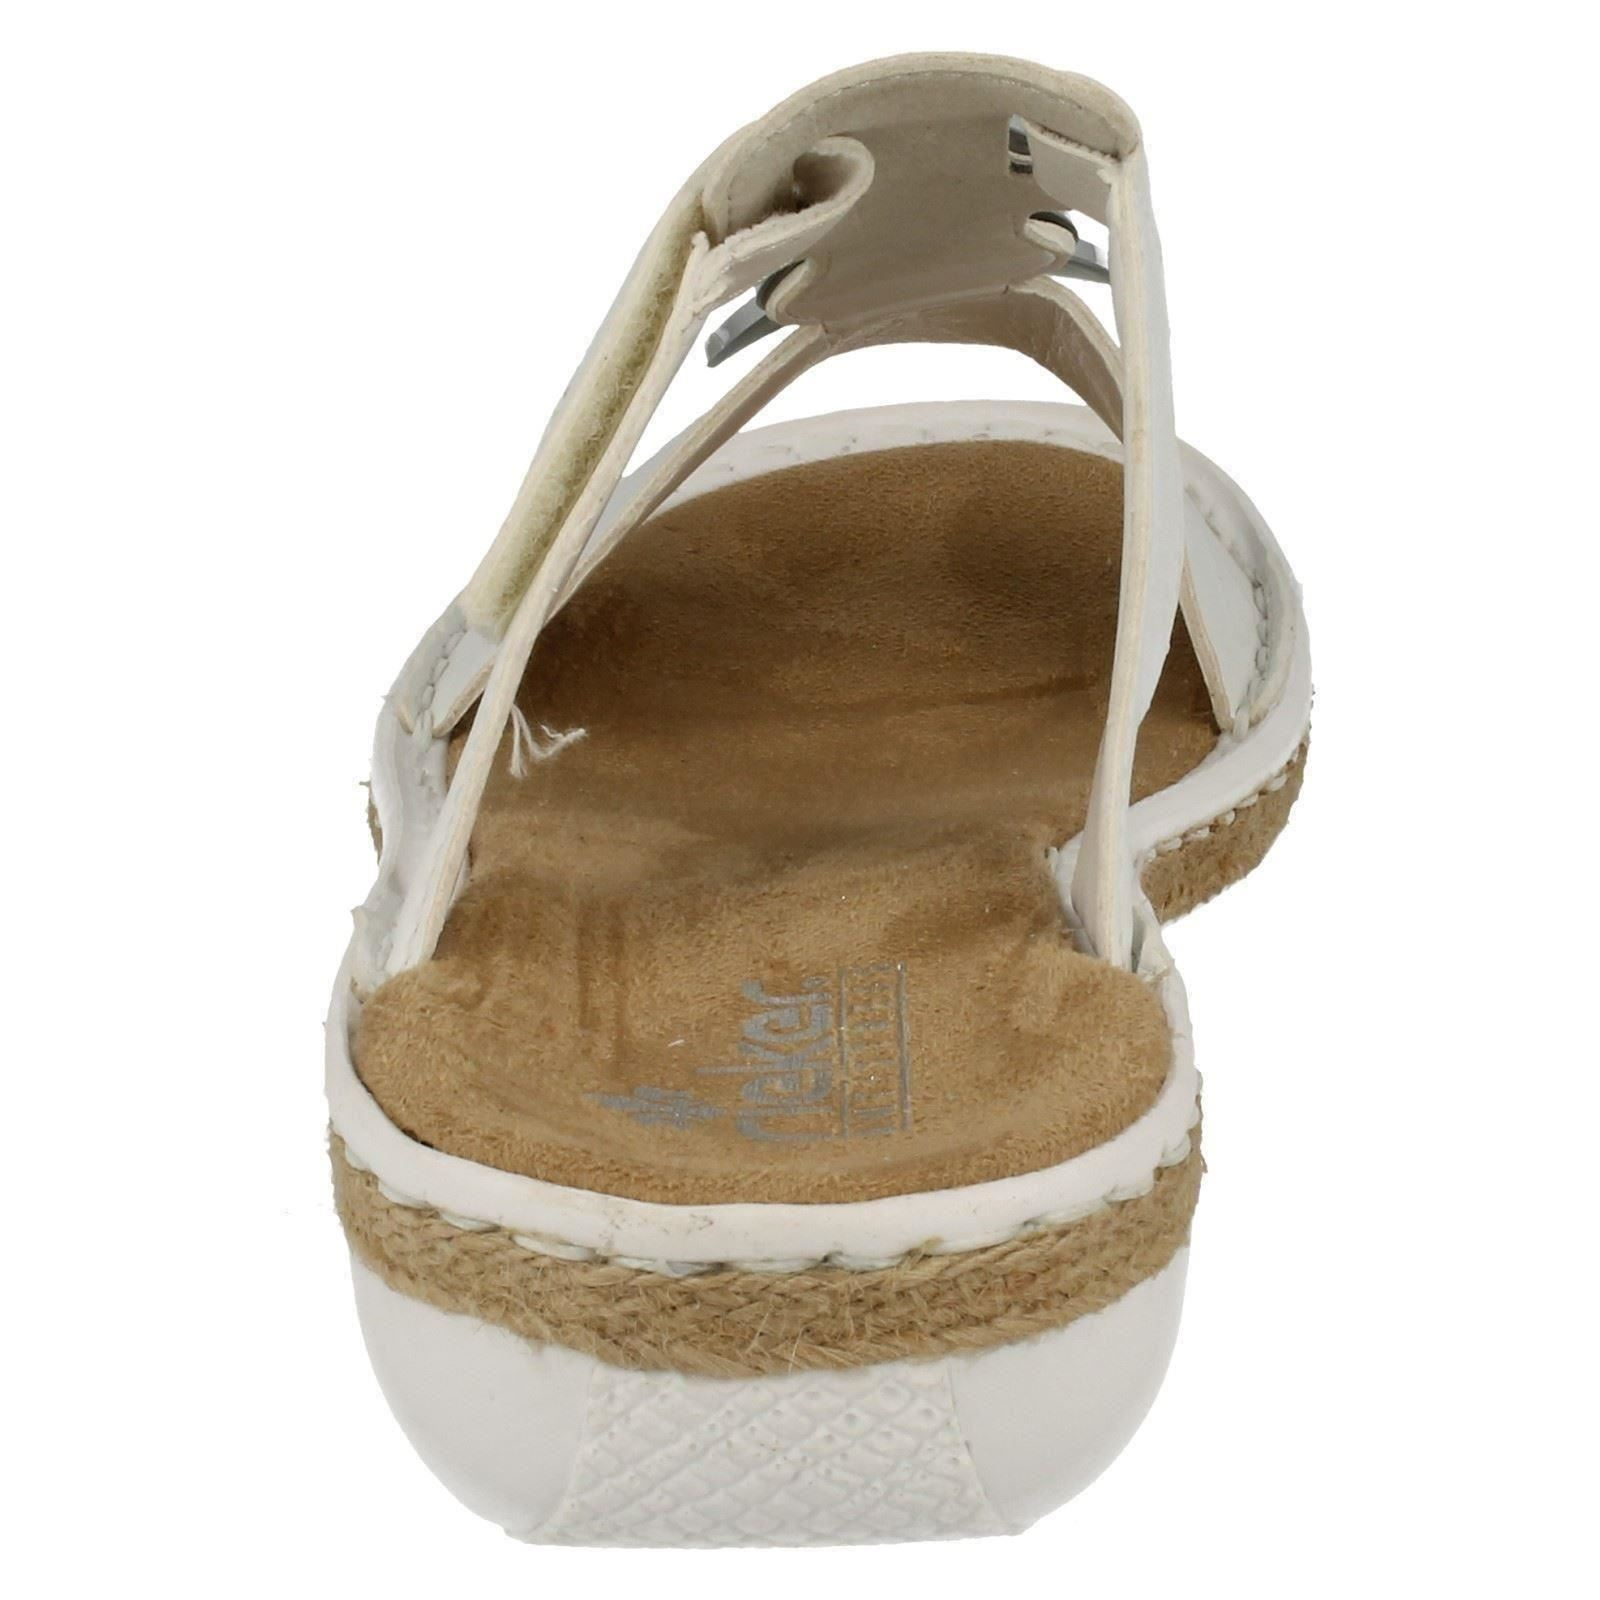 62353 White Label Combi Rieker Sandals Ladies qxtPUP